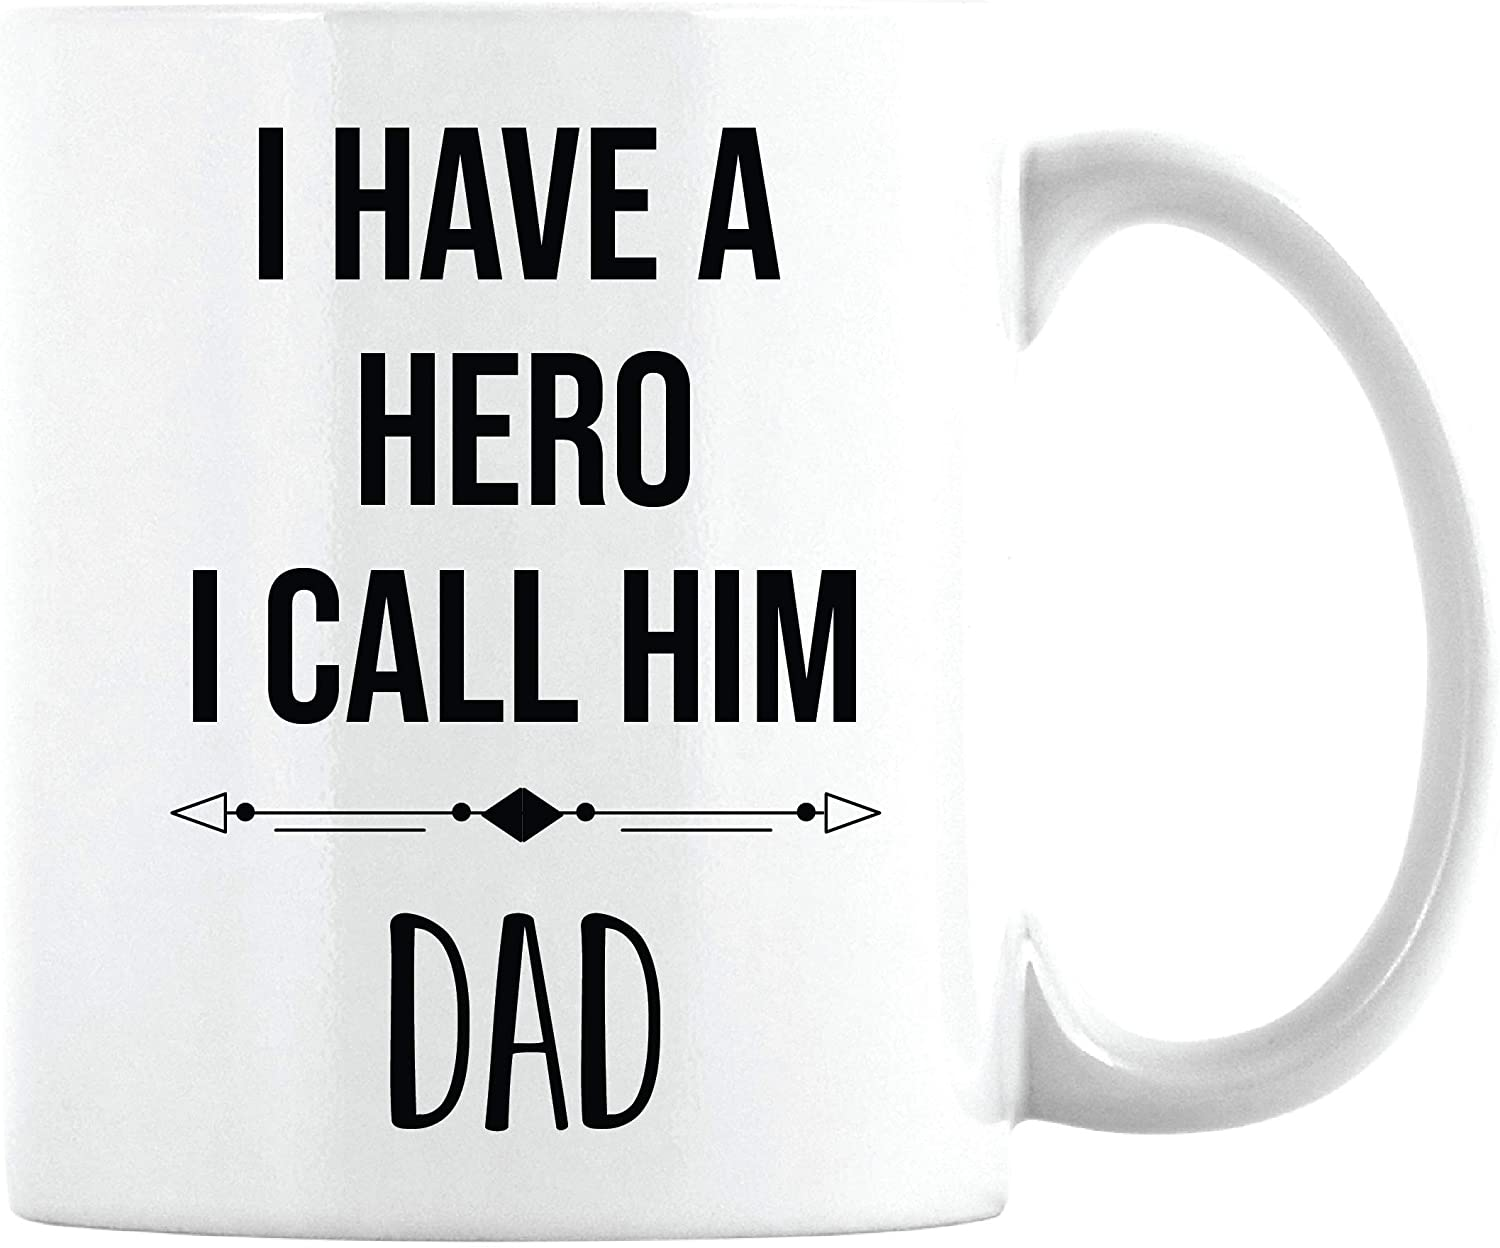 Amazon Com Father S Day Gifts For Dad I Have A Hero I Call Him Dad Mug Birthday Gift Ideas From Daughter Son Christmas Father S Day Presents White Coffee Cup 11oz